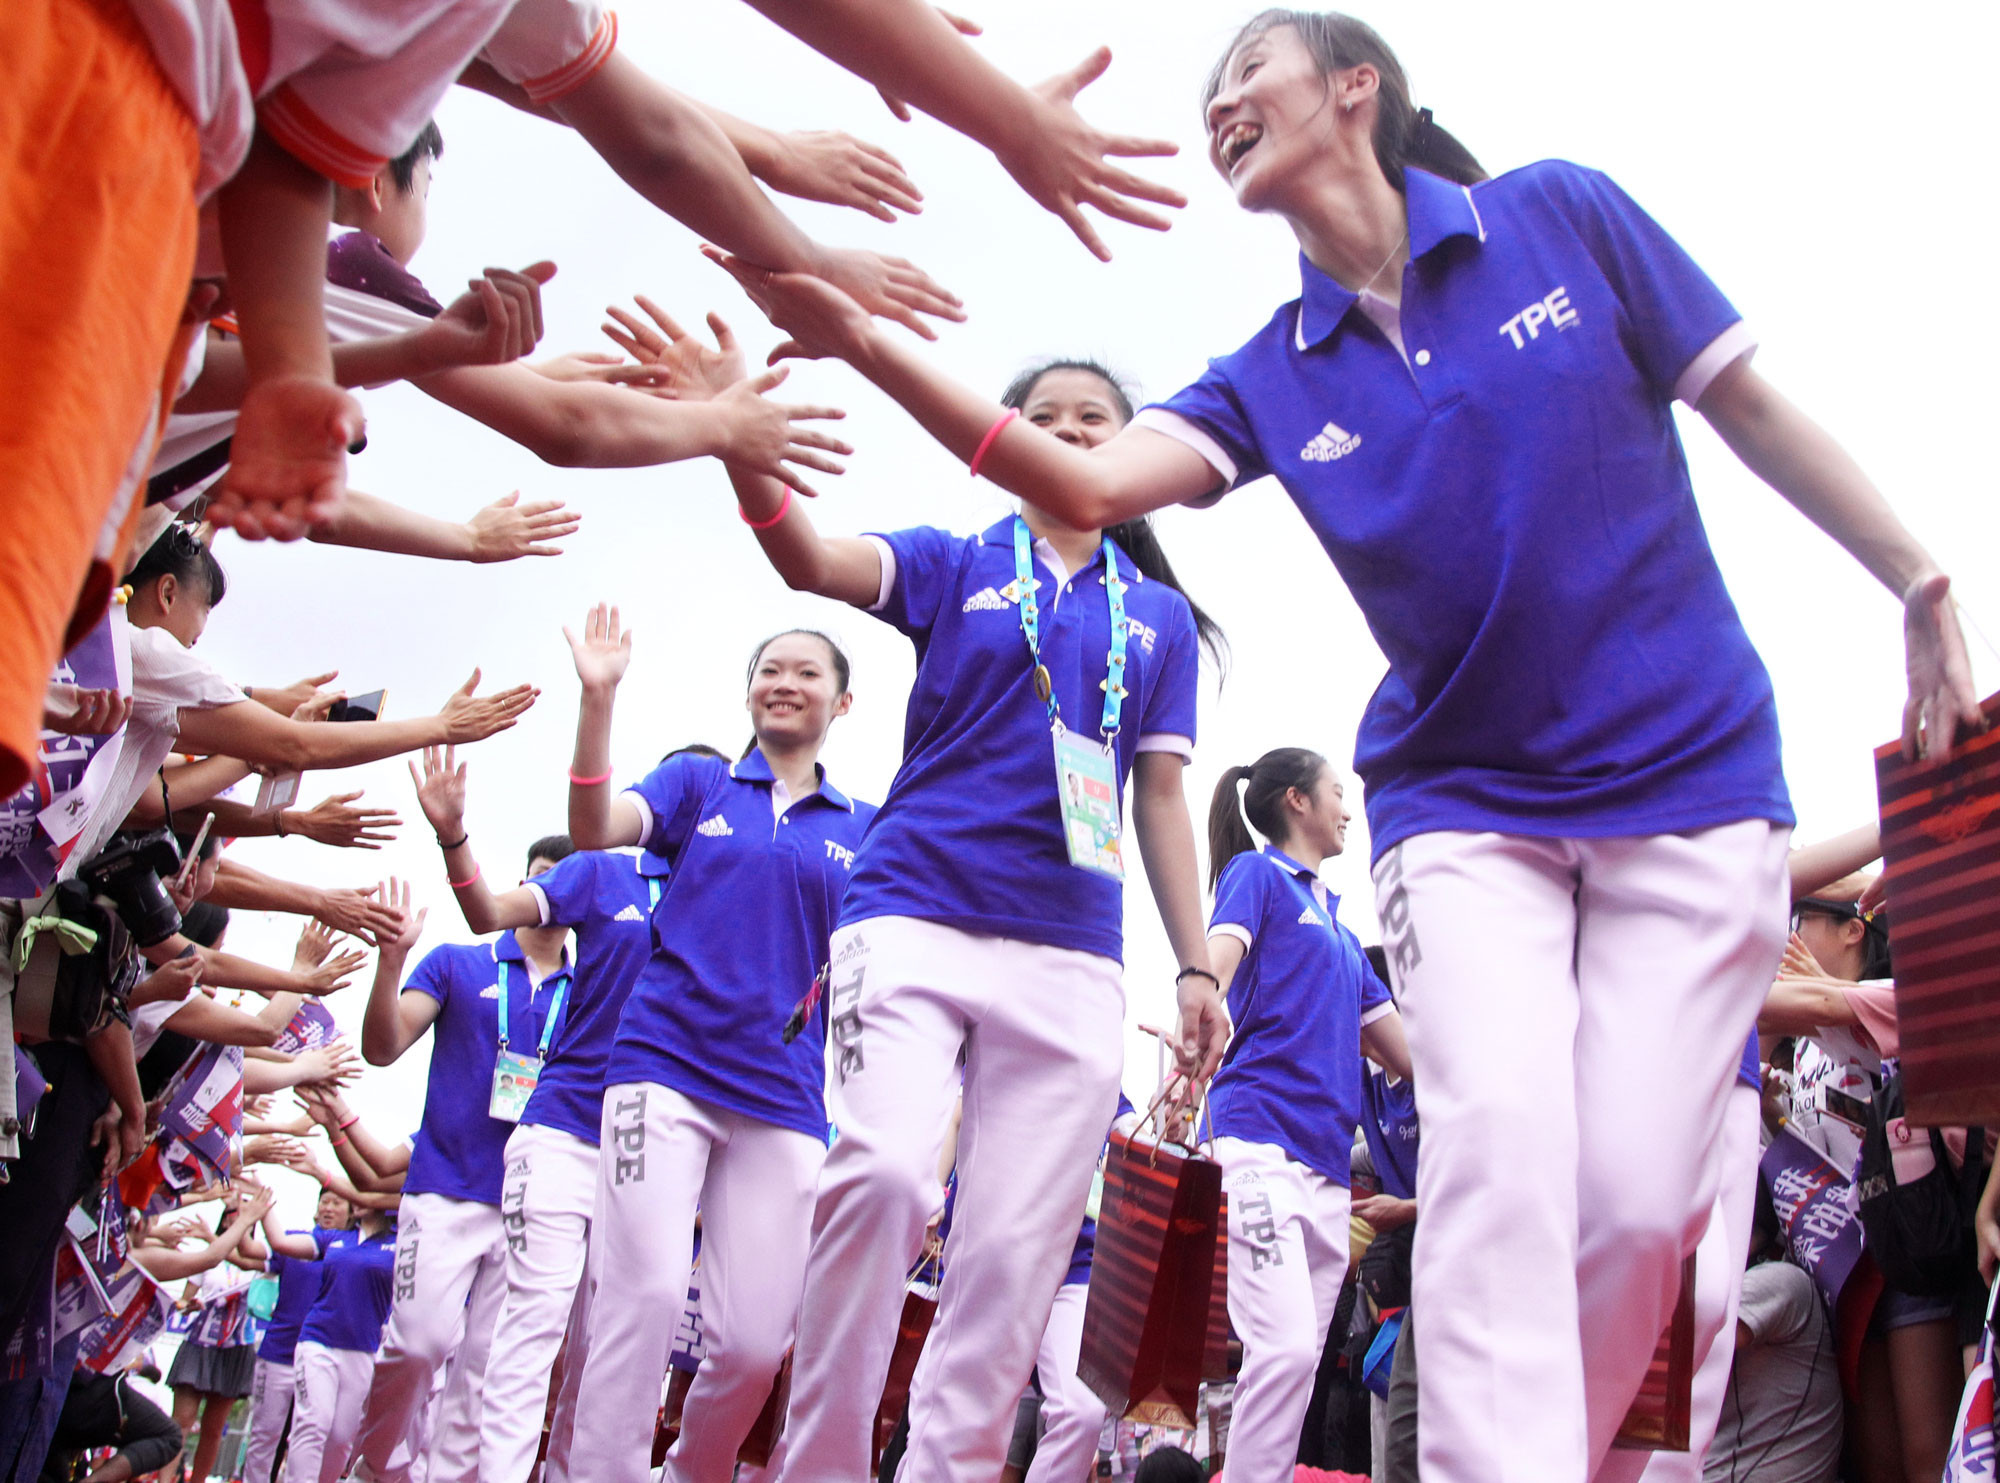 A study on the Taipei 2017 Summer Universiade has revealed that the event generated an economic impact of TWD$4.550 billion ©FISU